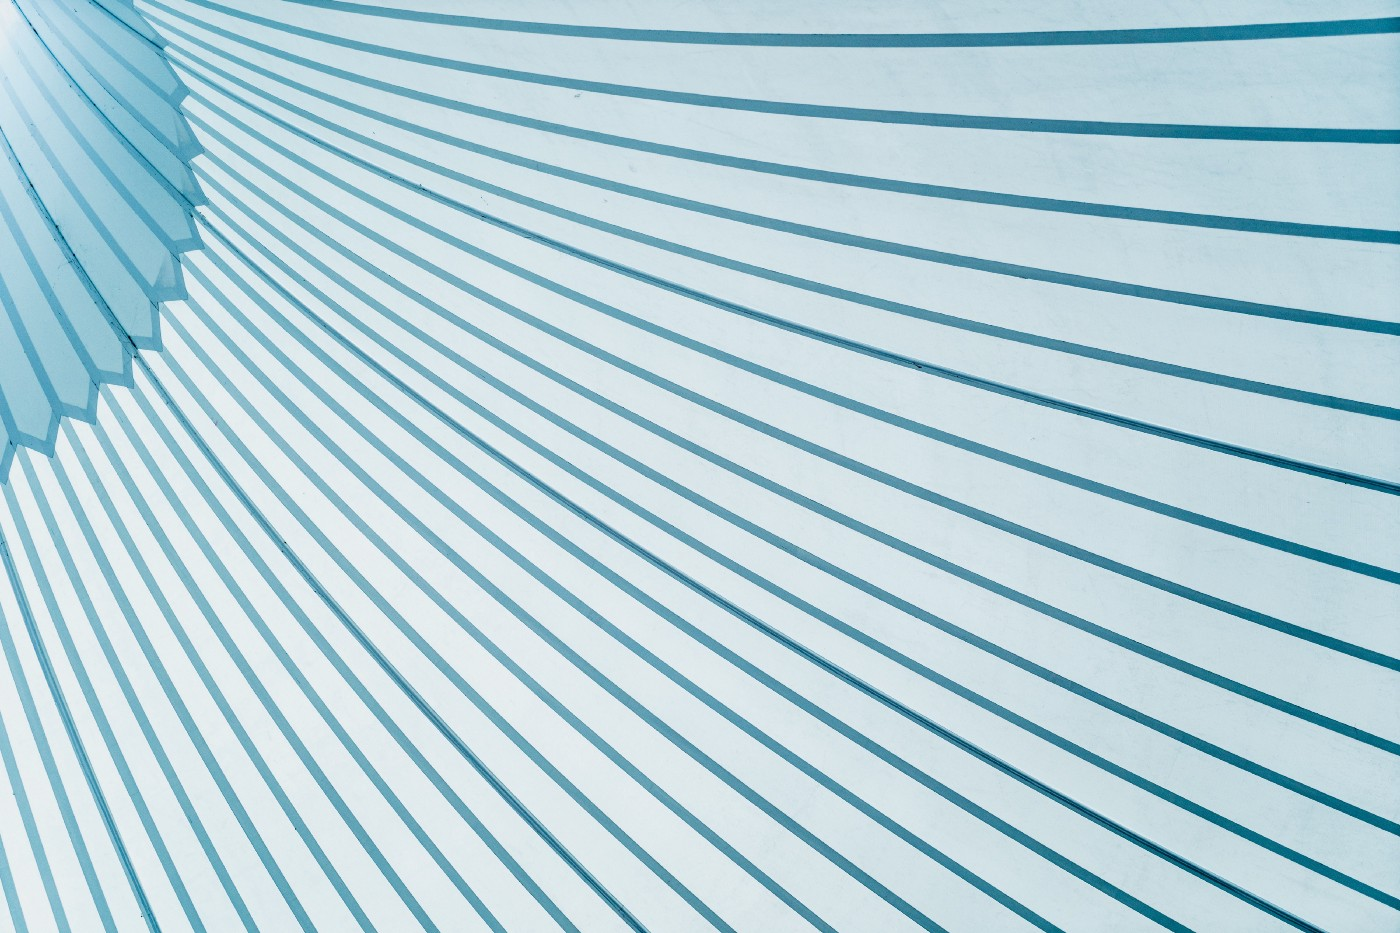 decorative: a pattern of sweeping blue lines